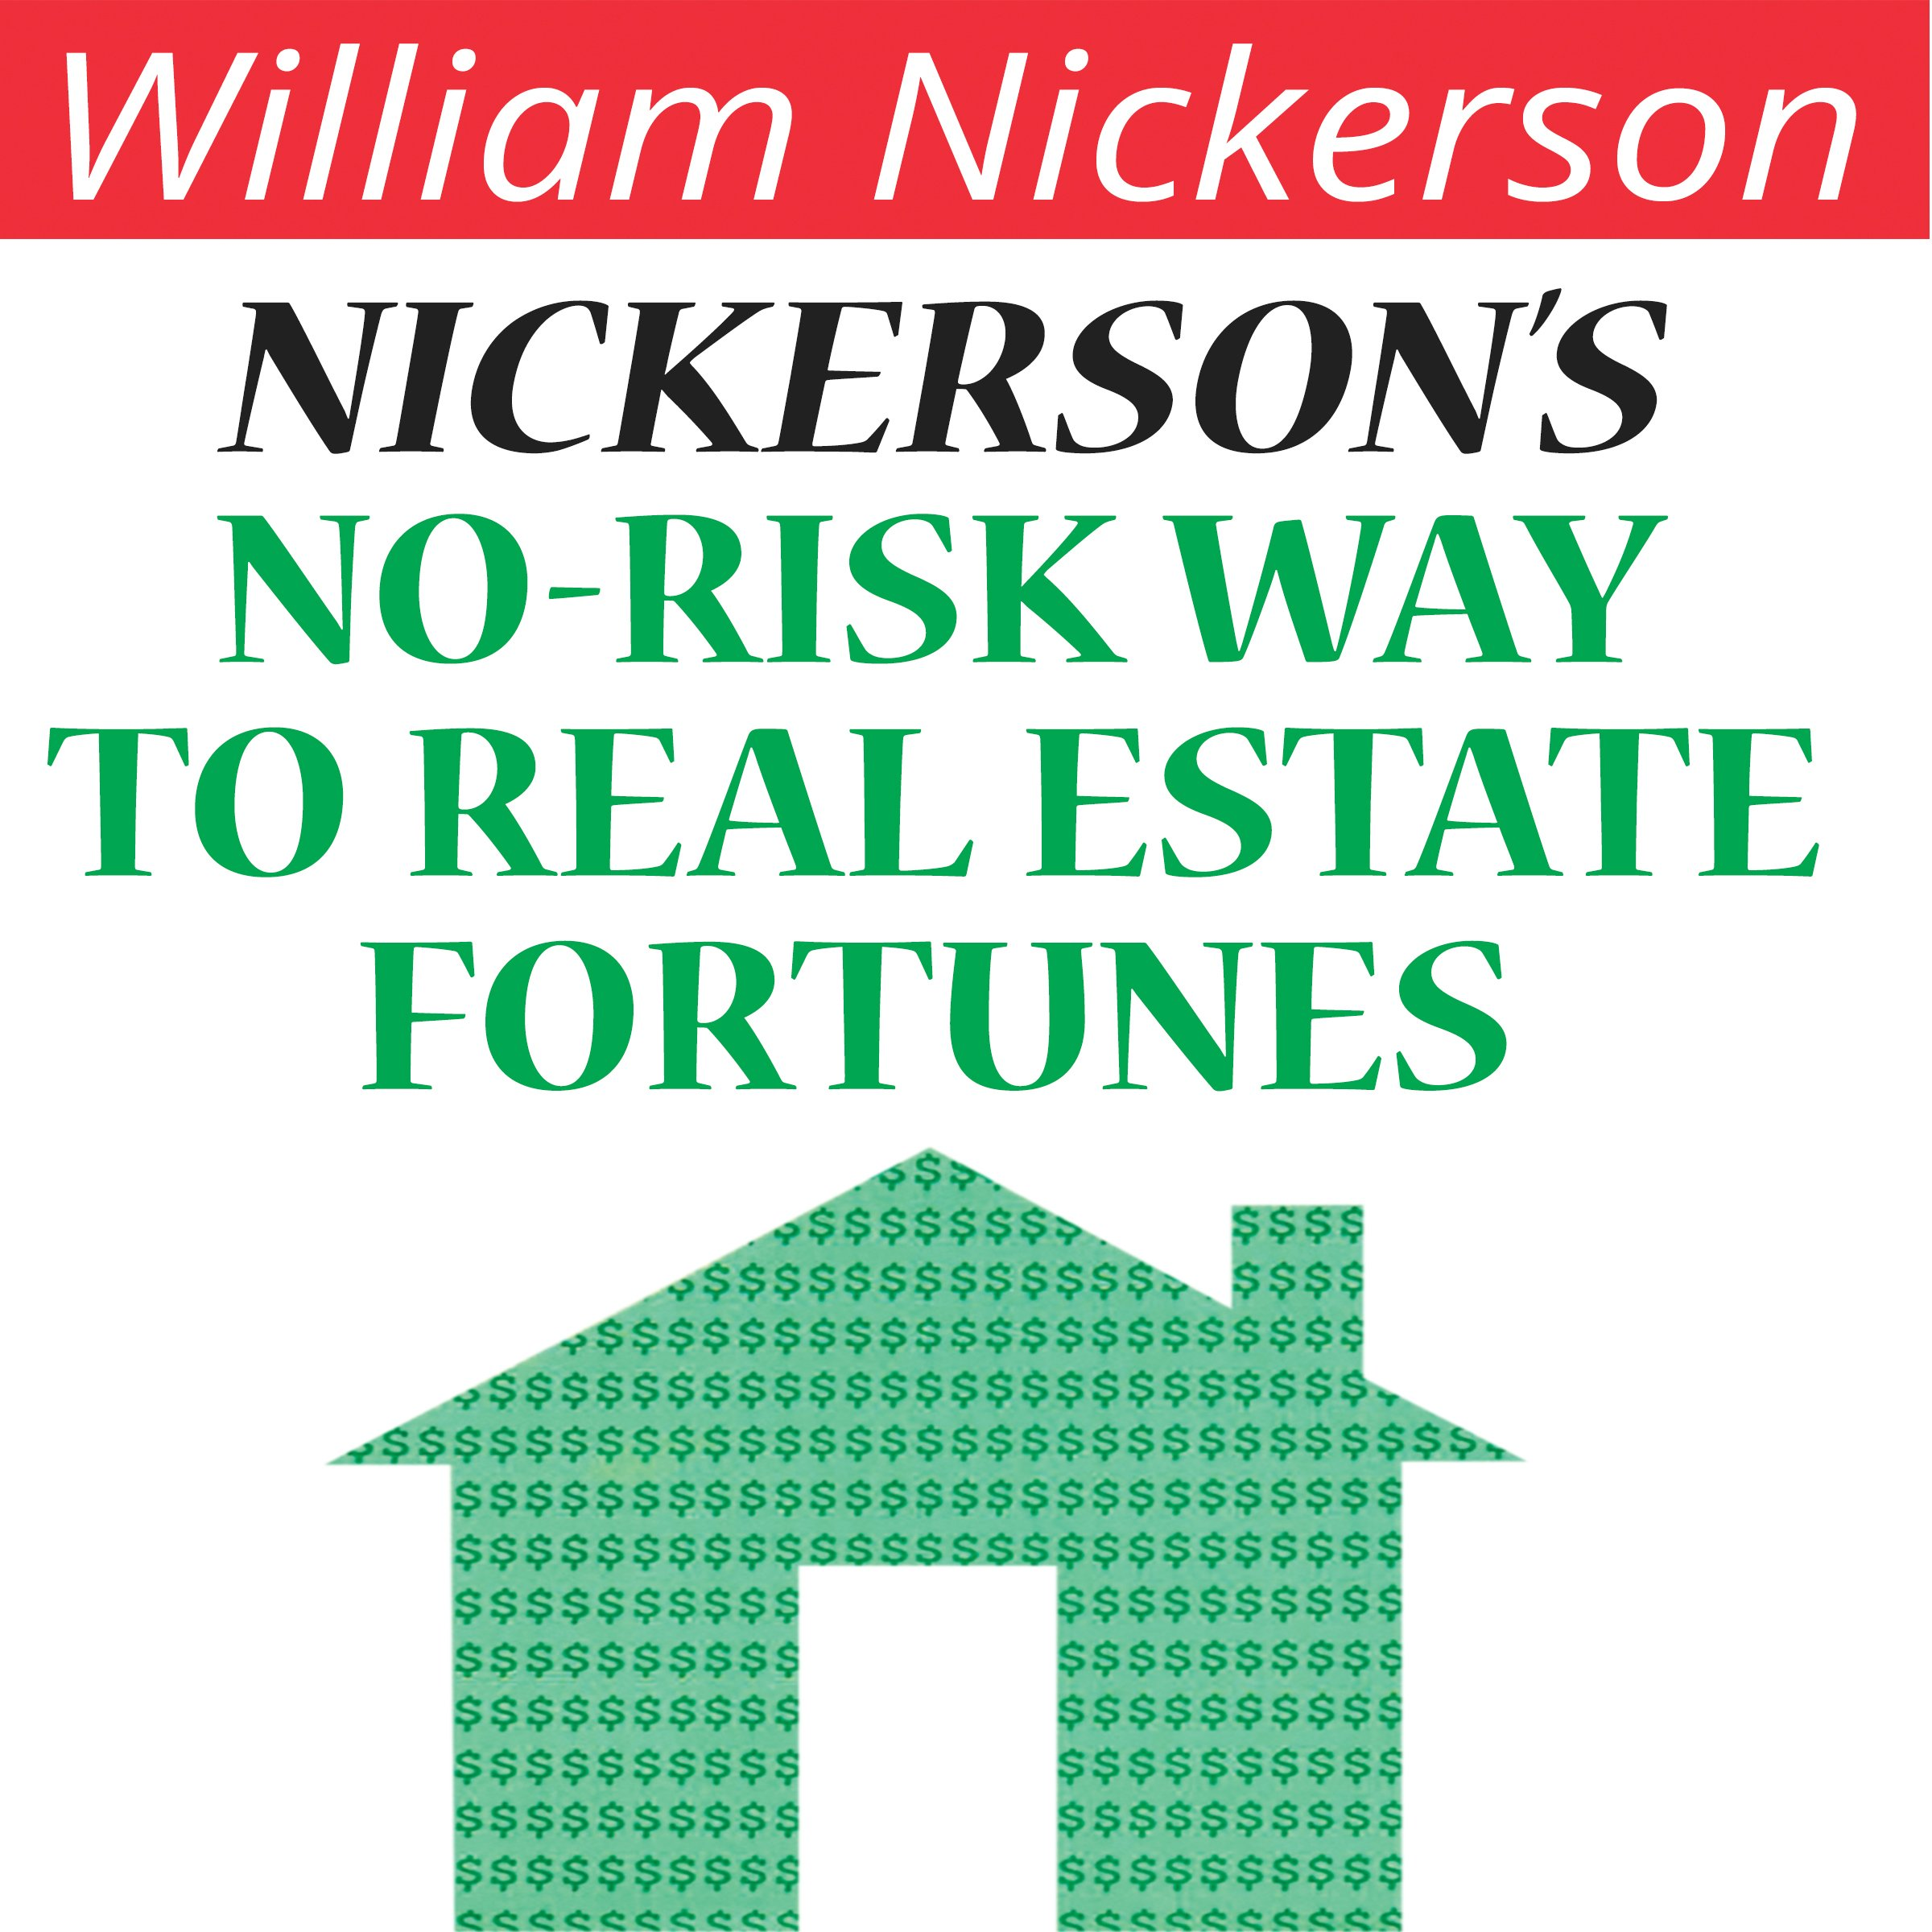 Nickerson's No-Risk Way to Real Estate Fortunes